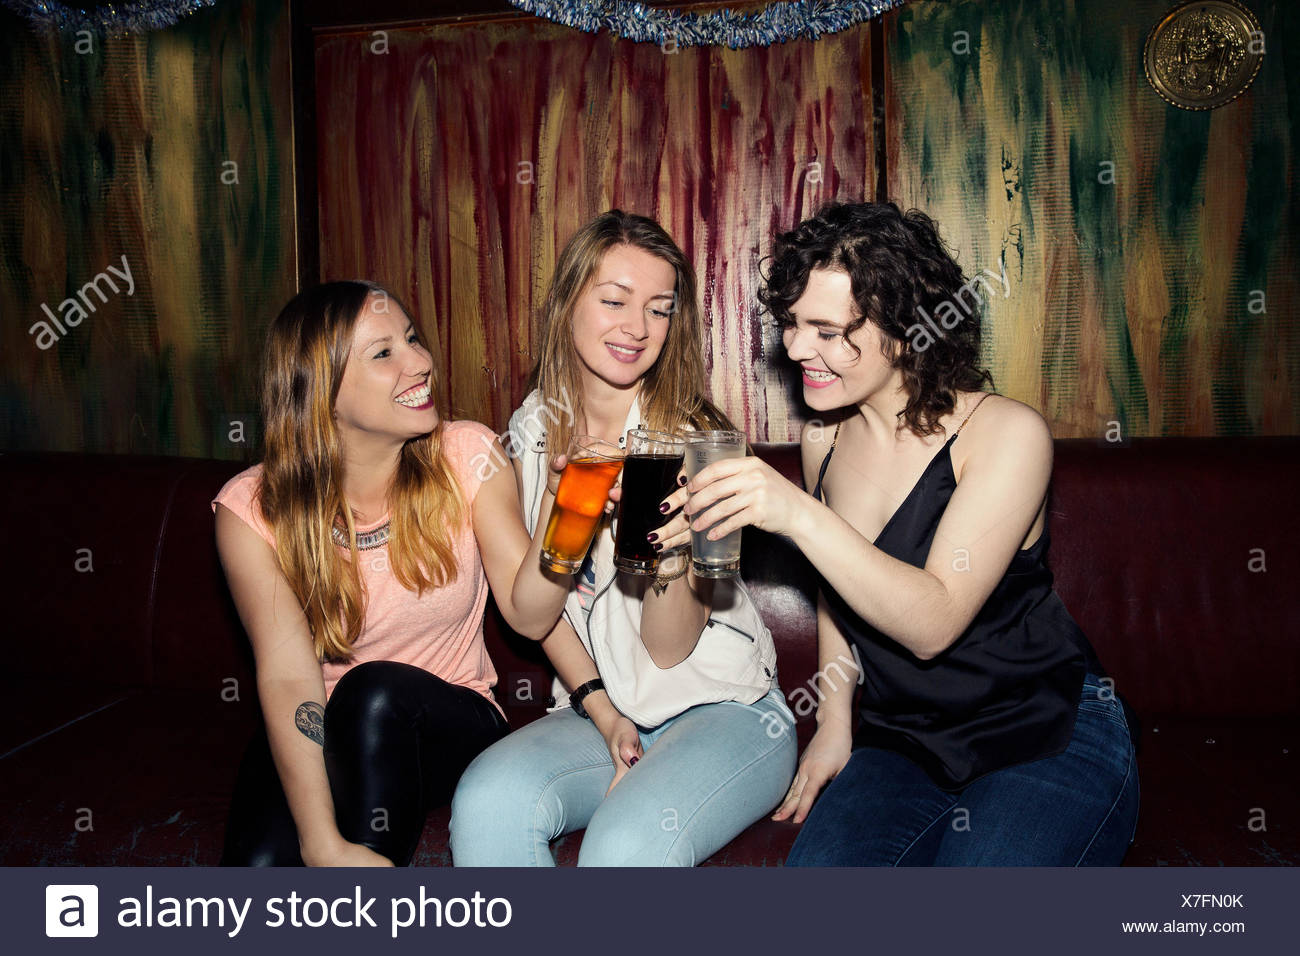 Three adult female friends raising a glass in bar - Stock Image